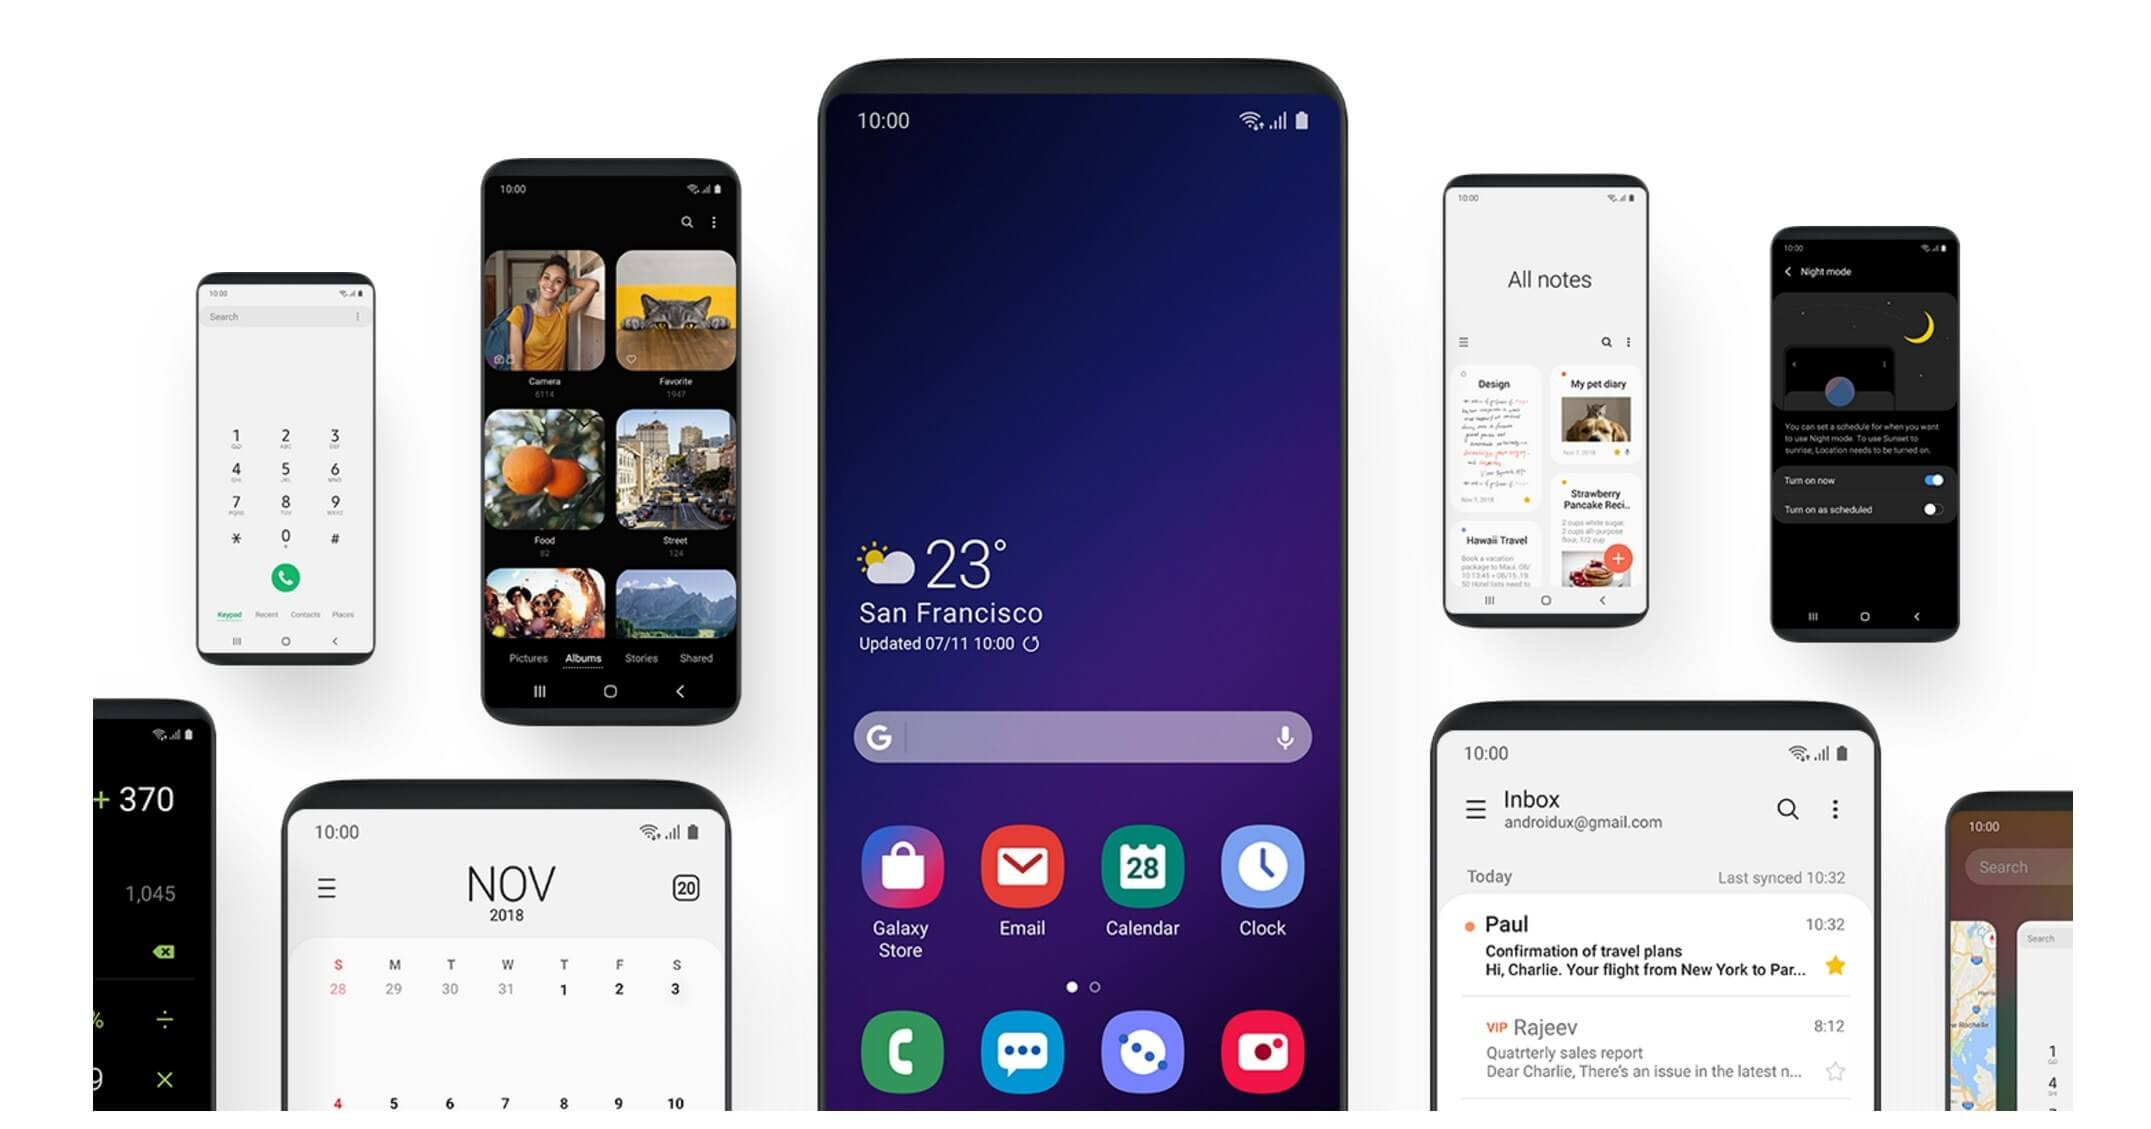 Samsung's One UI skin makes using large Galaxy handsets easier